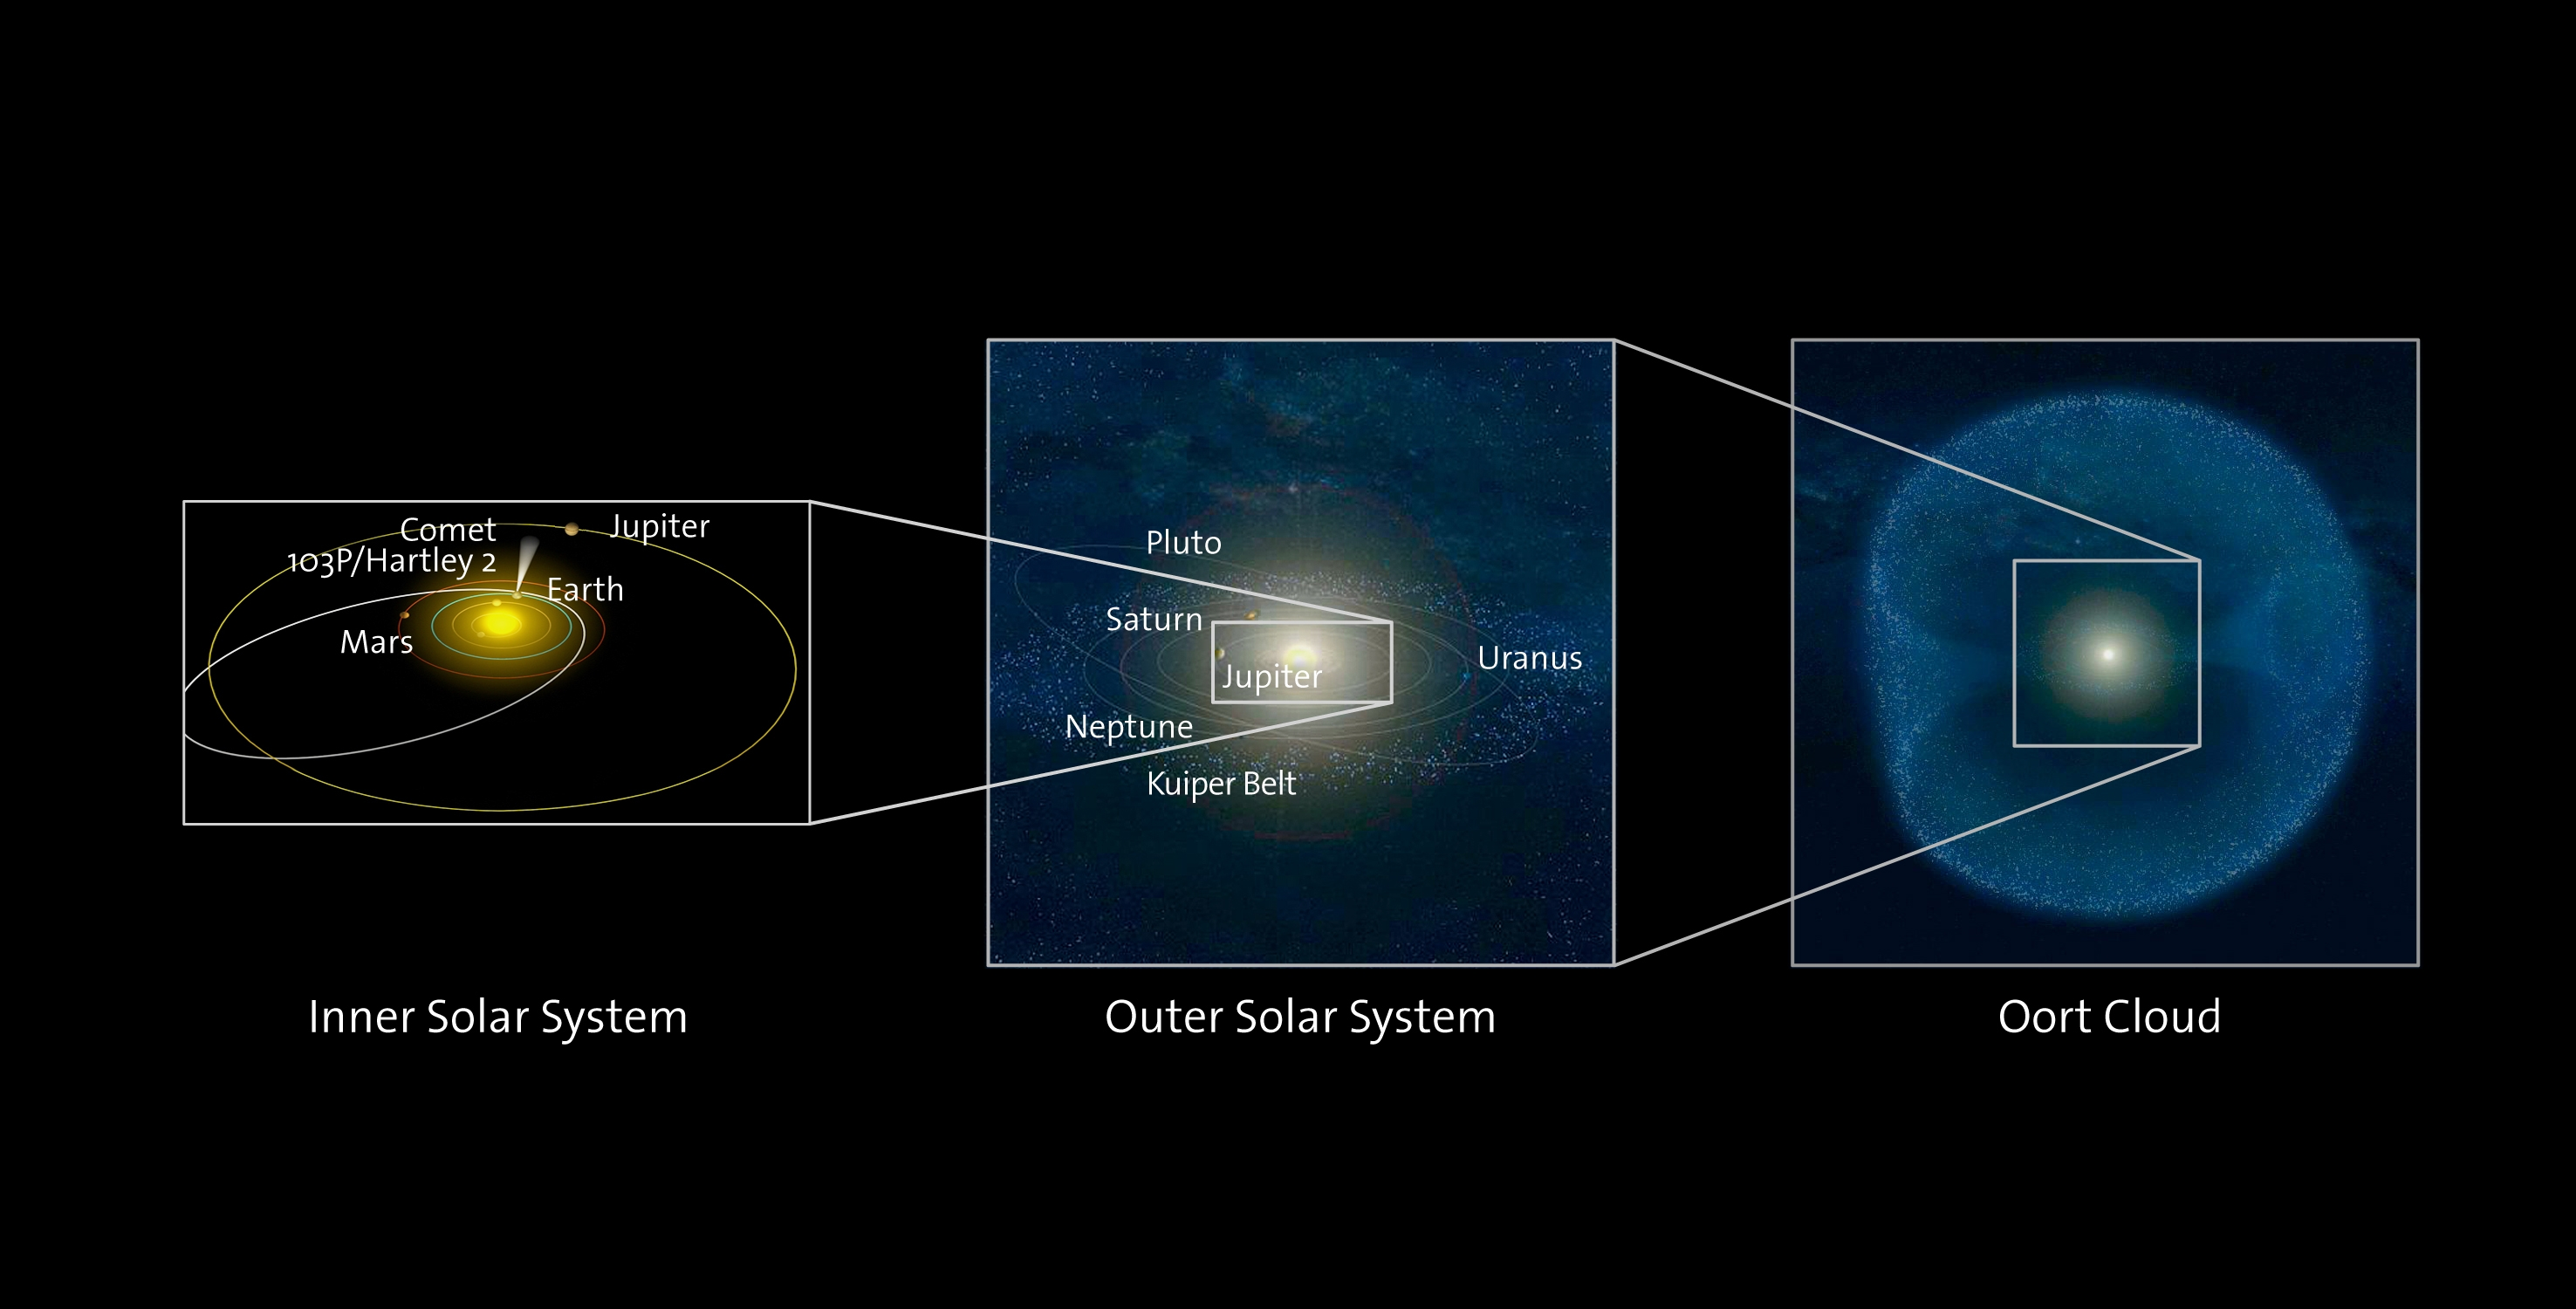 This illustration shows the locations of various classes of comets in the Solar System, relative to the orbits of the planets. The left panel shows the inner Solar System along with the orbit of Jupiter-Family comet Hartley 2. The central panel shows a larger portion of the Solar System beyond the orbit of Jupiter, as well as the Kuiper Belt, one of the two main reservoirs of comets in the solar system. The right panel shows the Oort Cloud, the other main reservoir of comets located well beyond the outer solar system. Credit: ESA/AOES Medialab